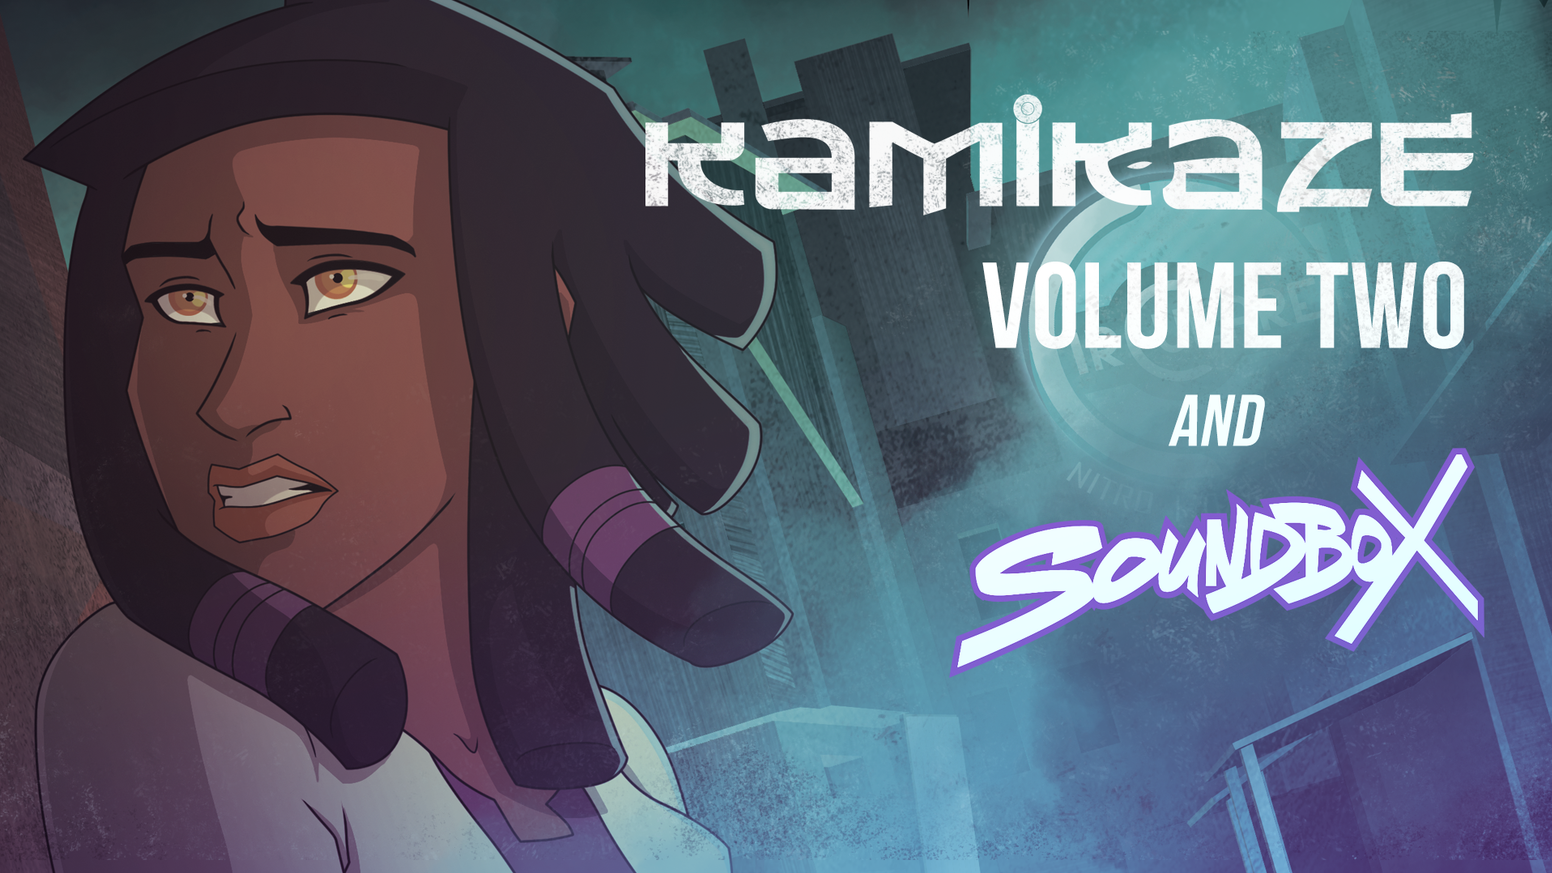 The saga continues! With the help of over 280 fans, we raised the funds to print Kamikaze Volume 2 and SoundBox.  Stay tuned for further updates!